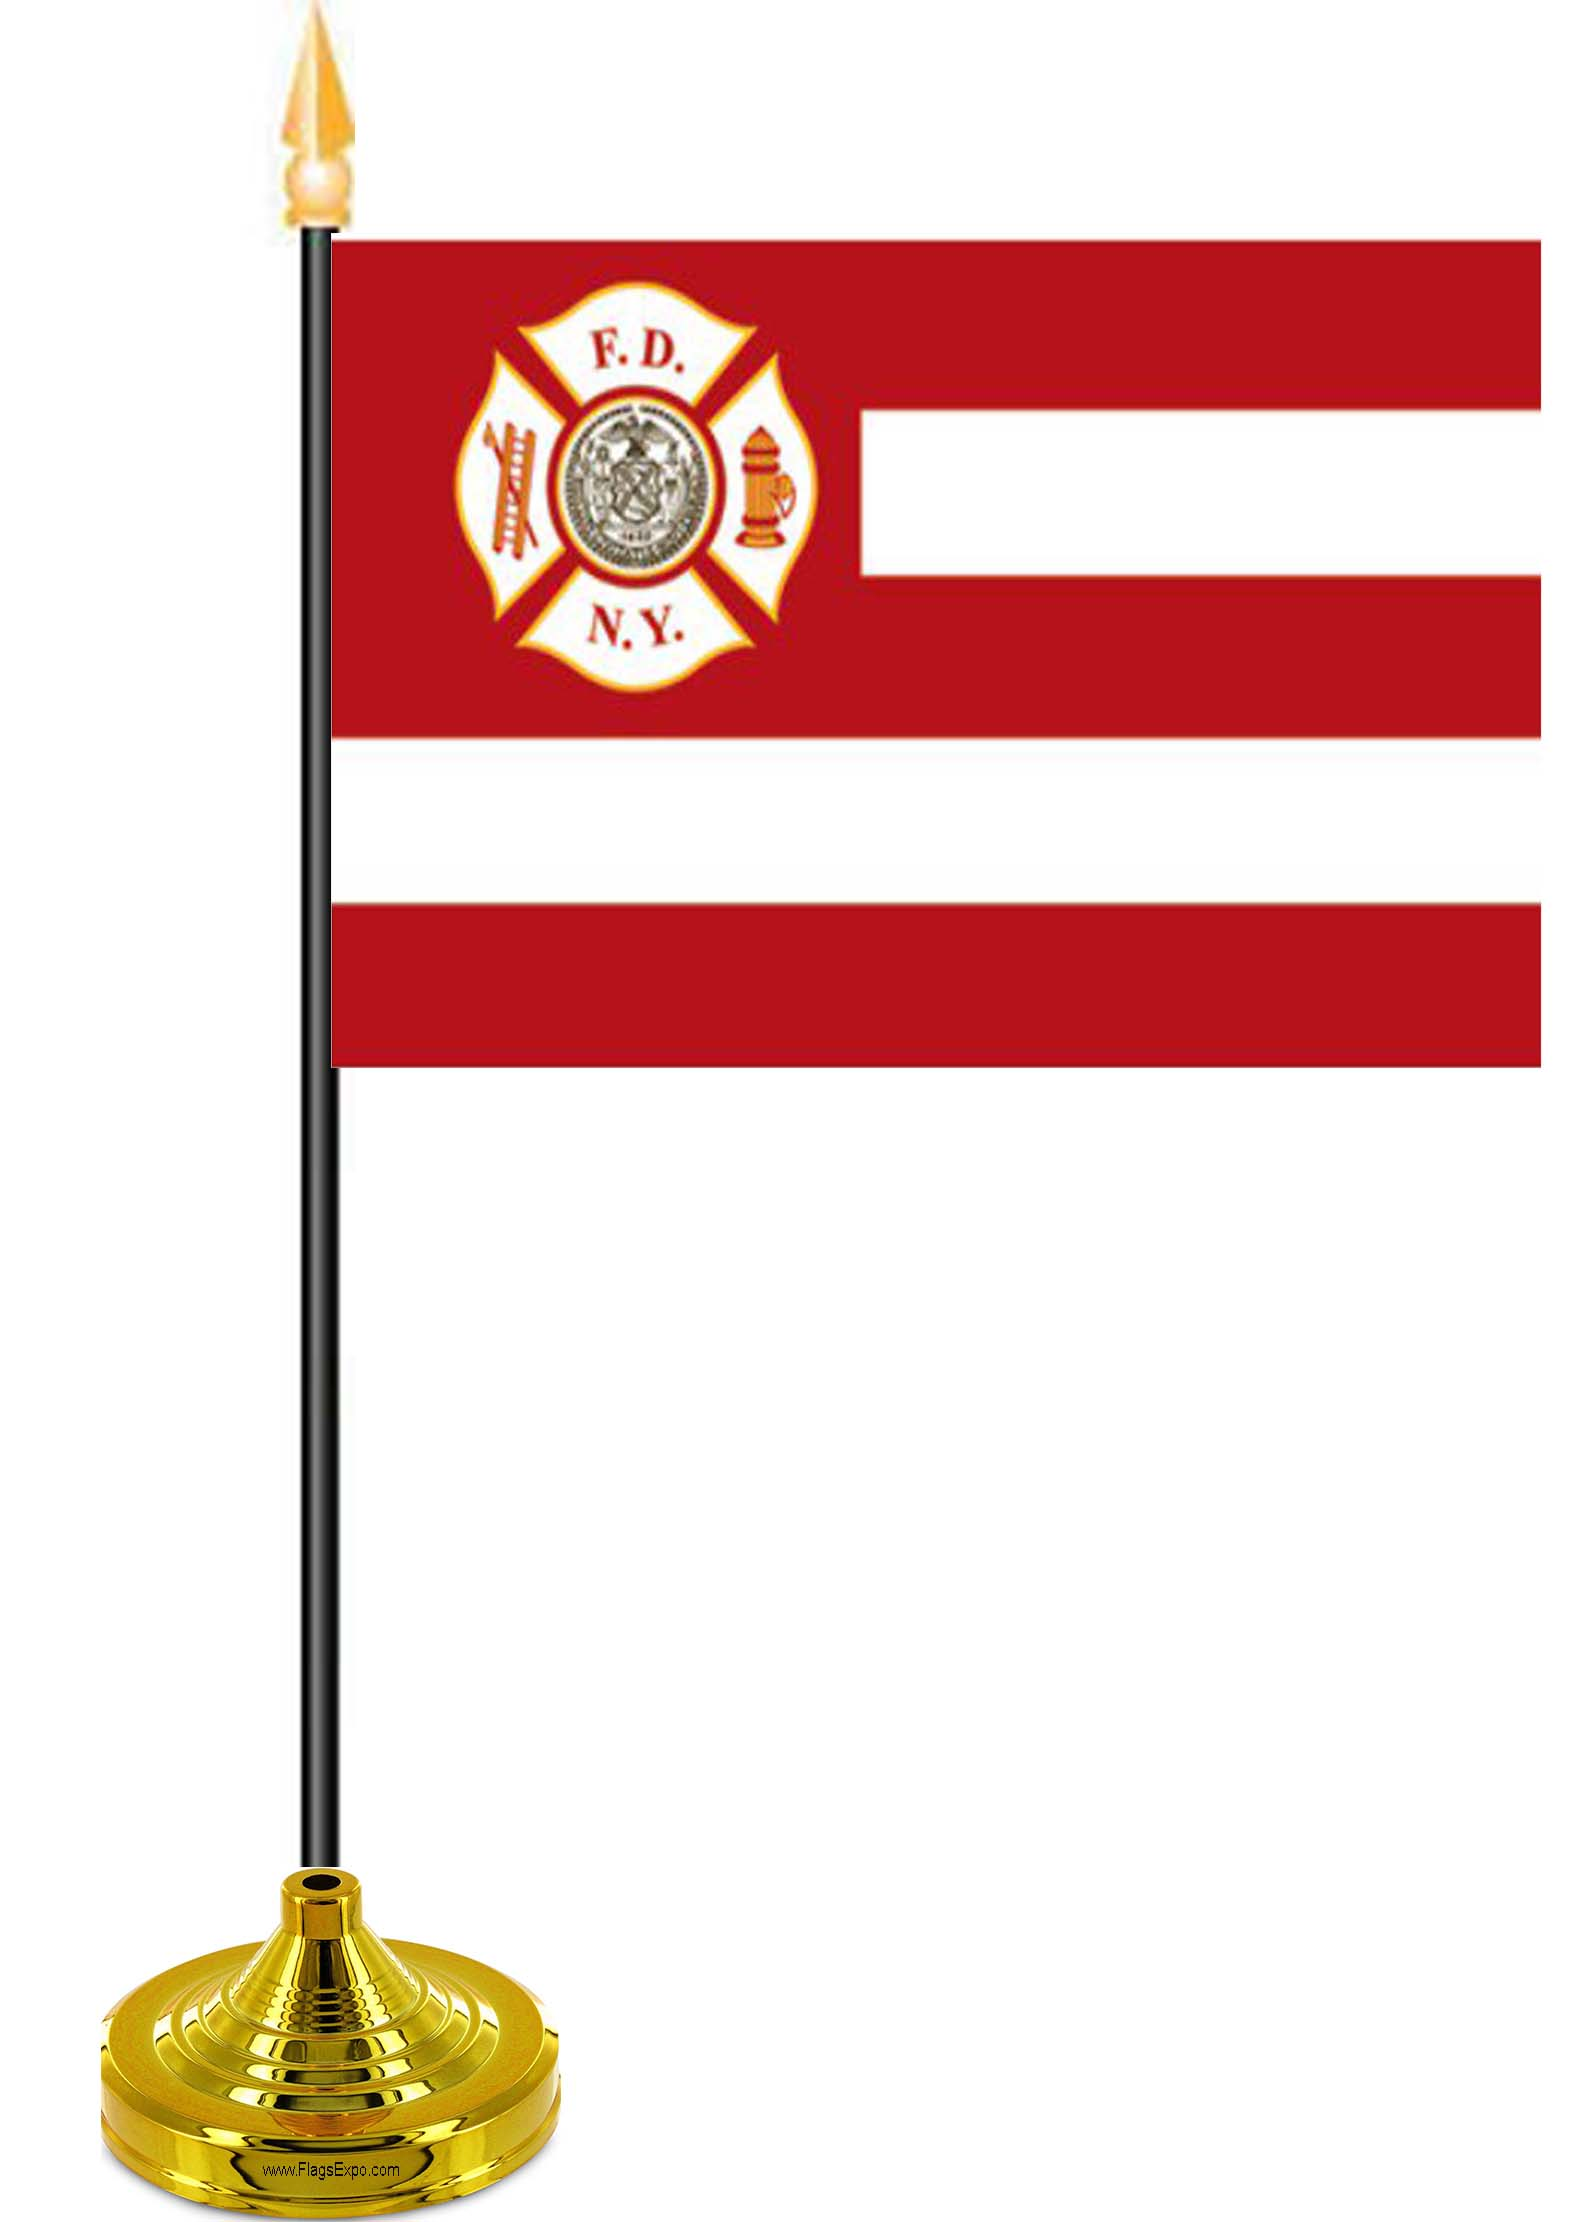 FDNY Deck Flags